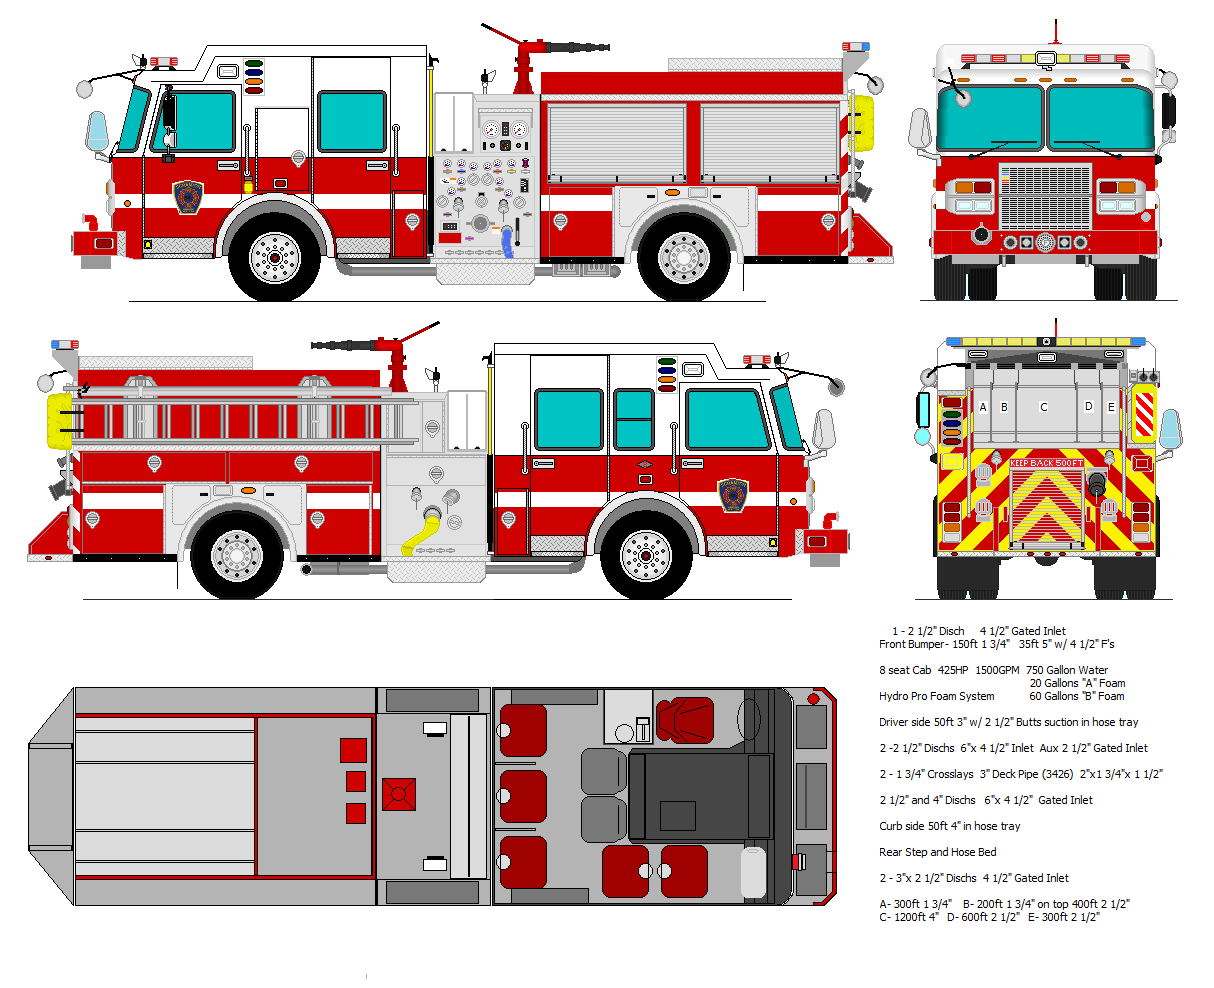 fire truck drawing pictures at getdrawings com free for personal rh getdrawings com Fire Engine Drawing Fire Engine Pump Panel Controls Parts